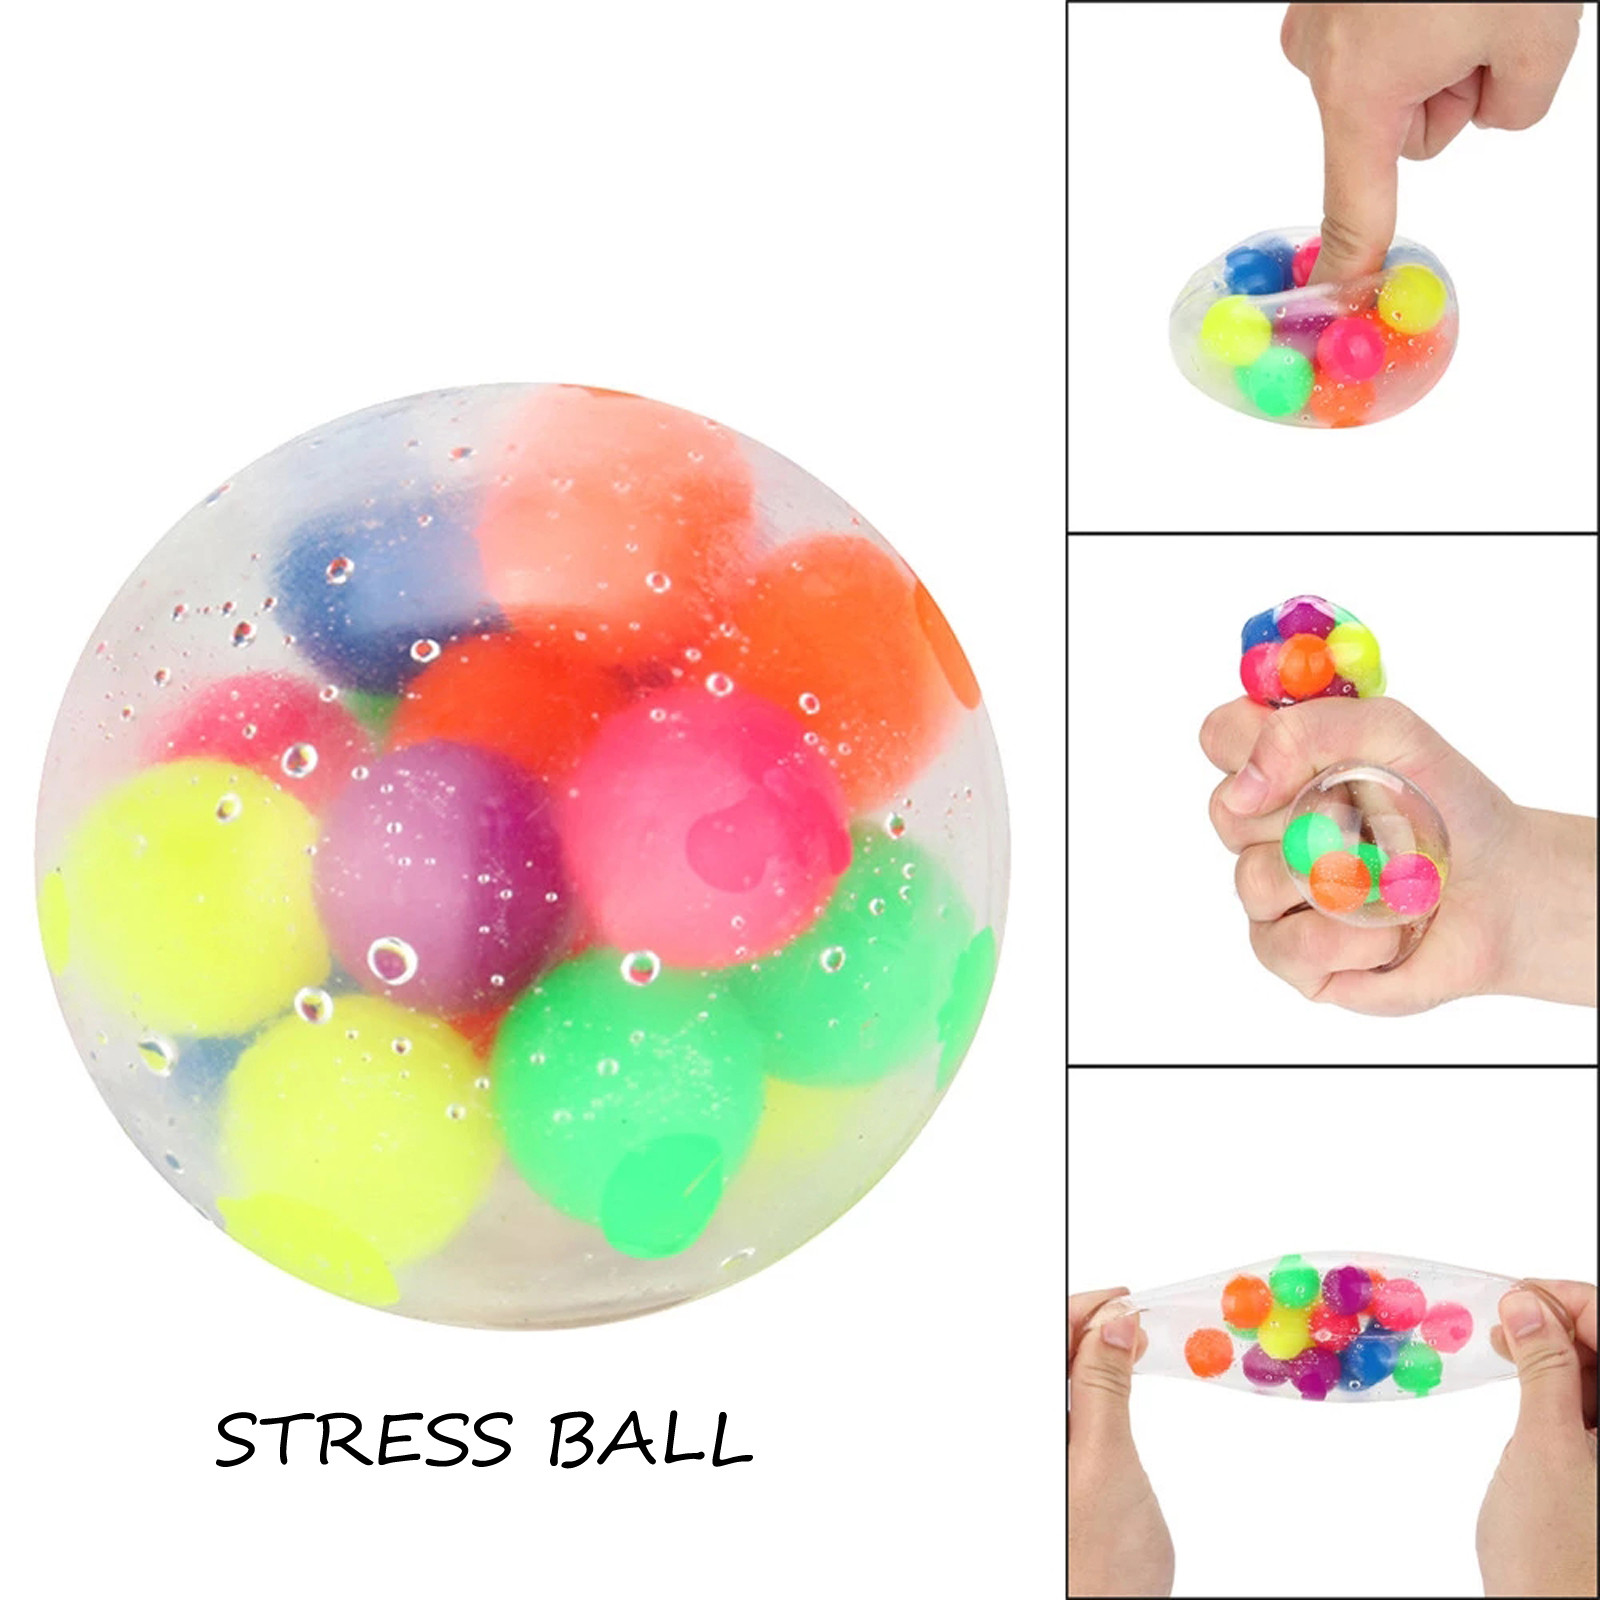 Figet Toys Stress-Ball Popit Pressure-Ball-Stress Reliever Color-Sensory 2PCS Office